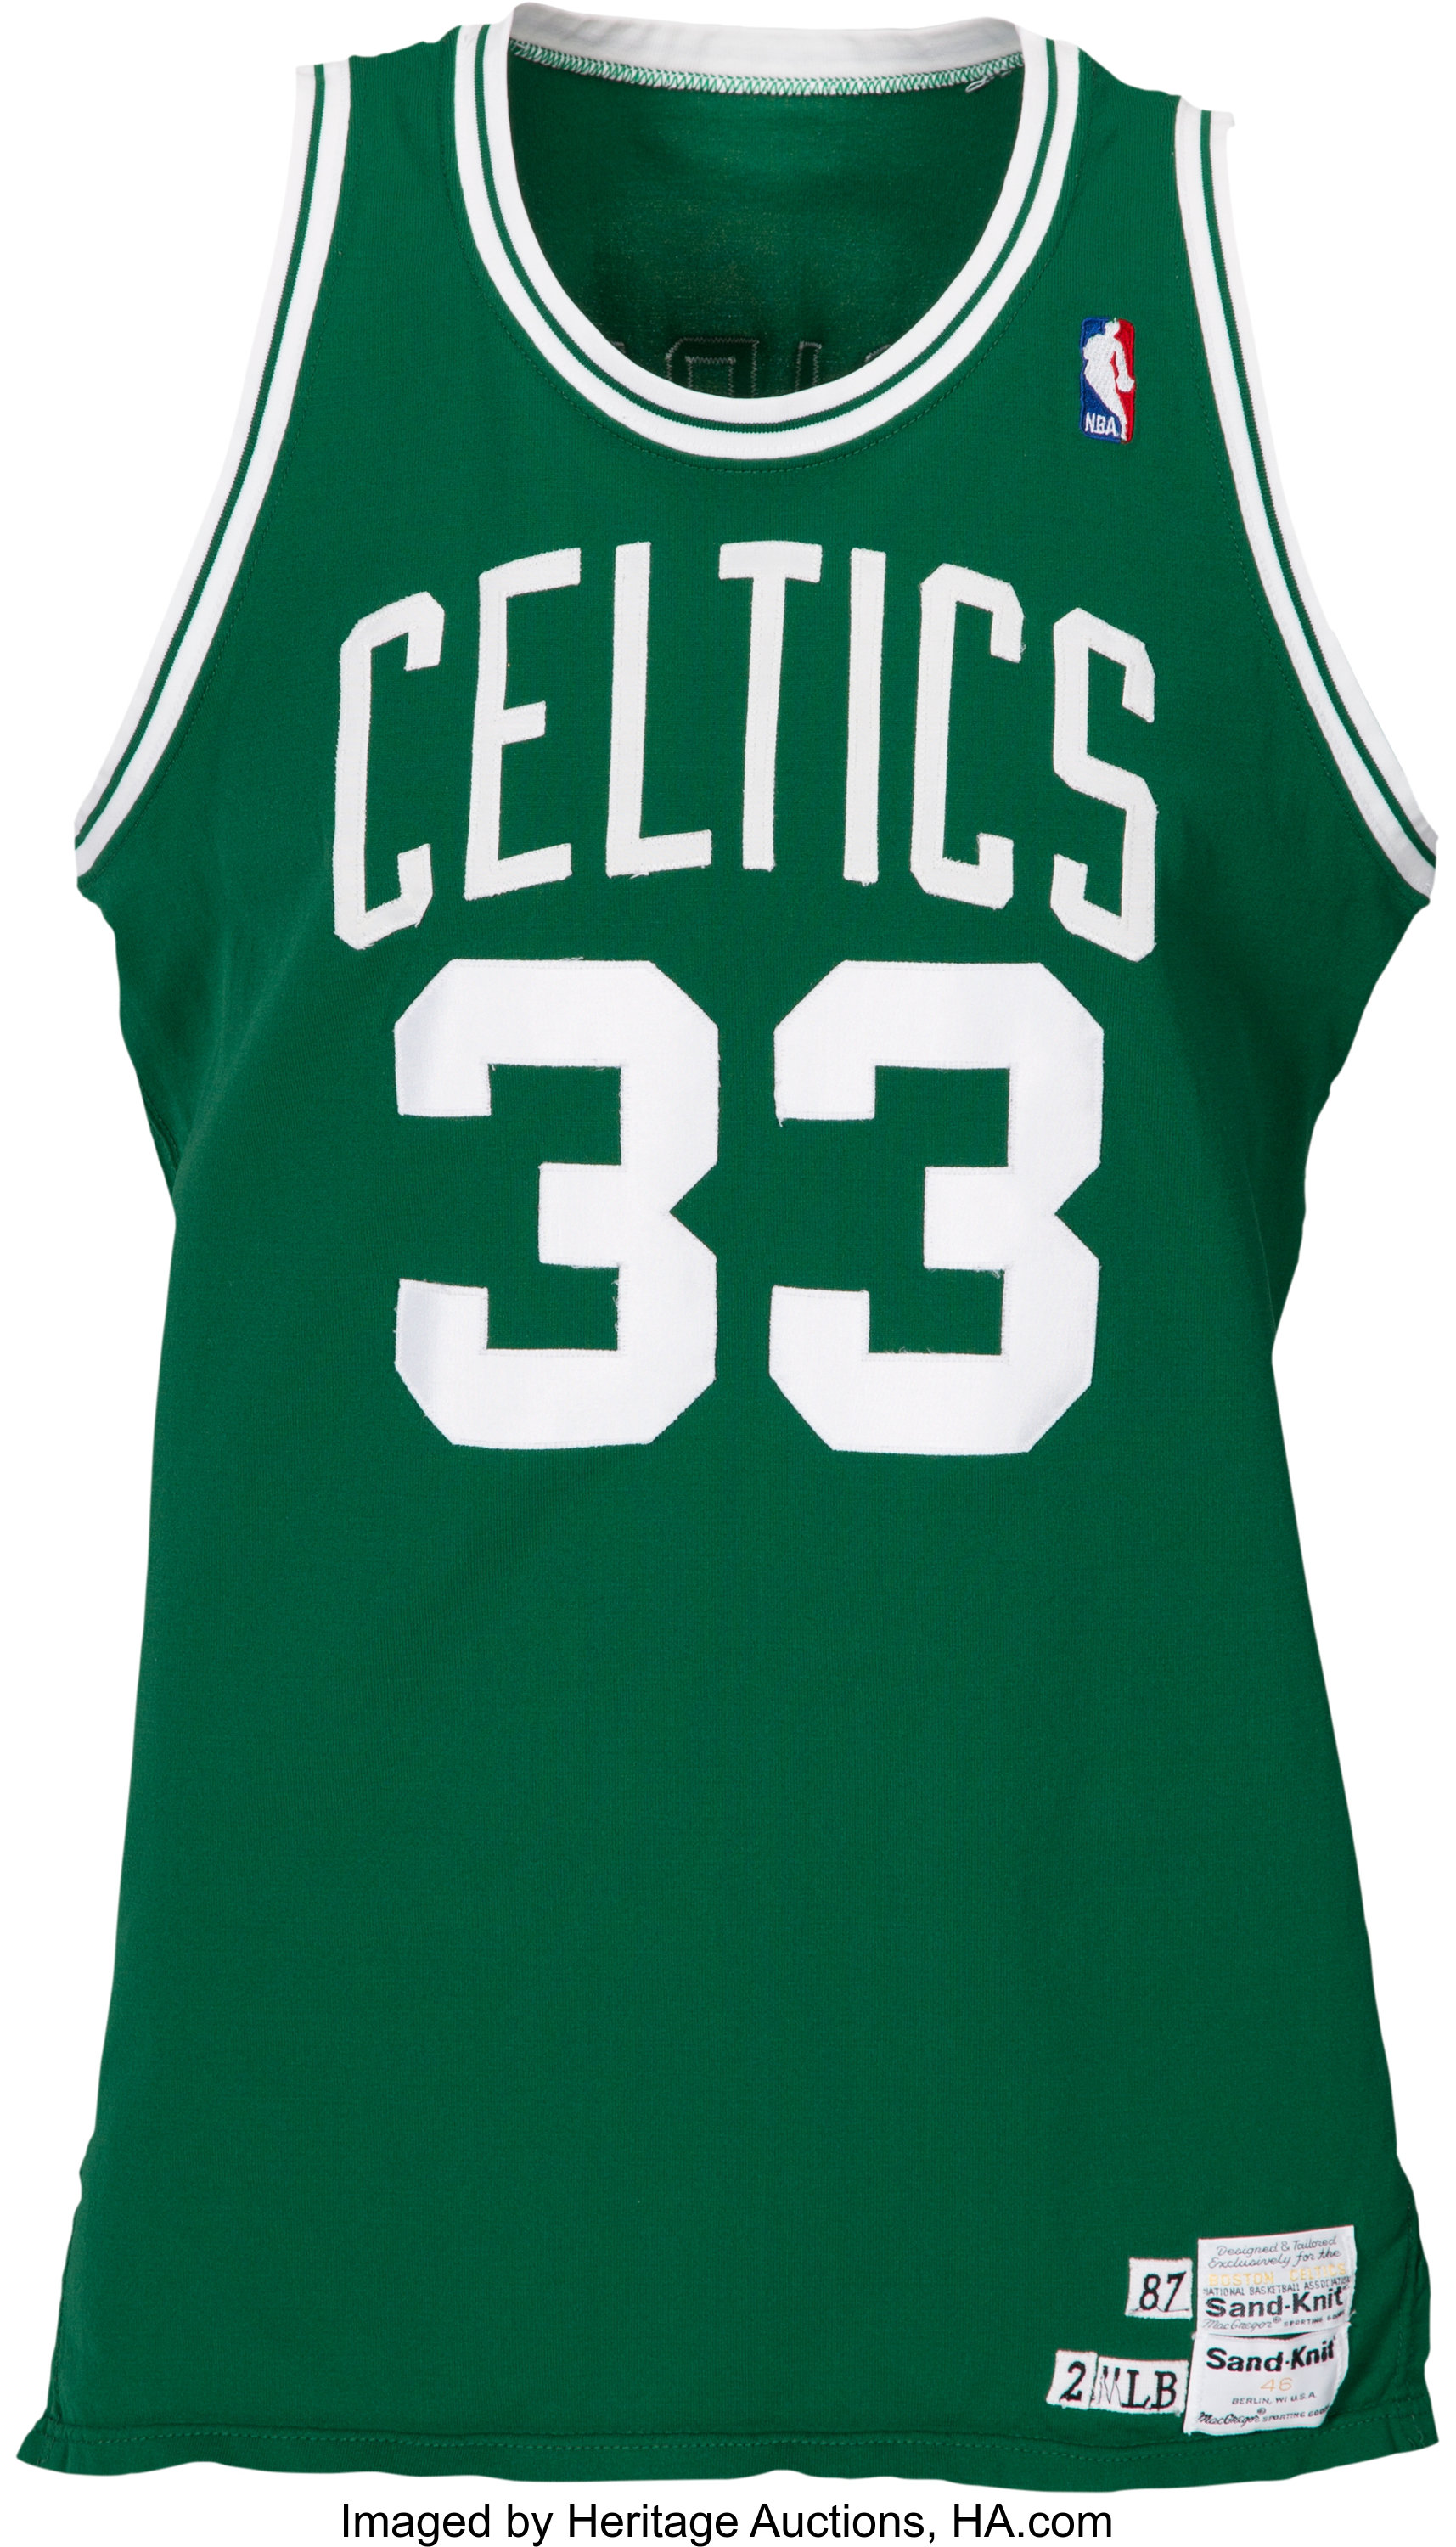 outlet store f6643 320de 1987-88 Larry Bird Game Worn Boston Celtics Jersey, MEARS A8 ...